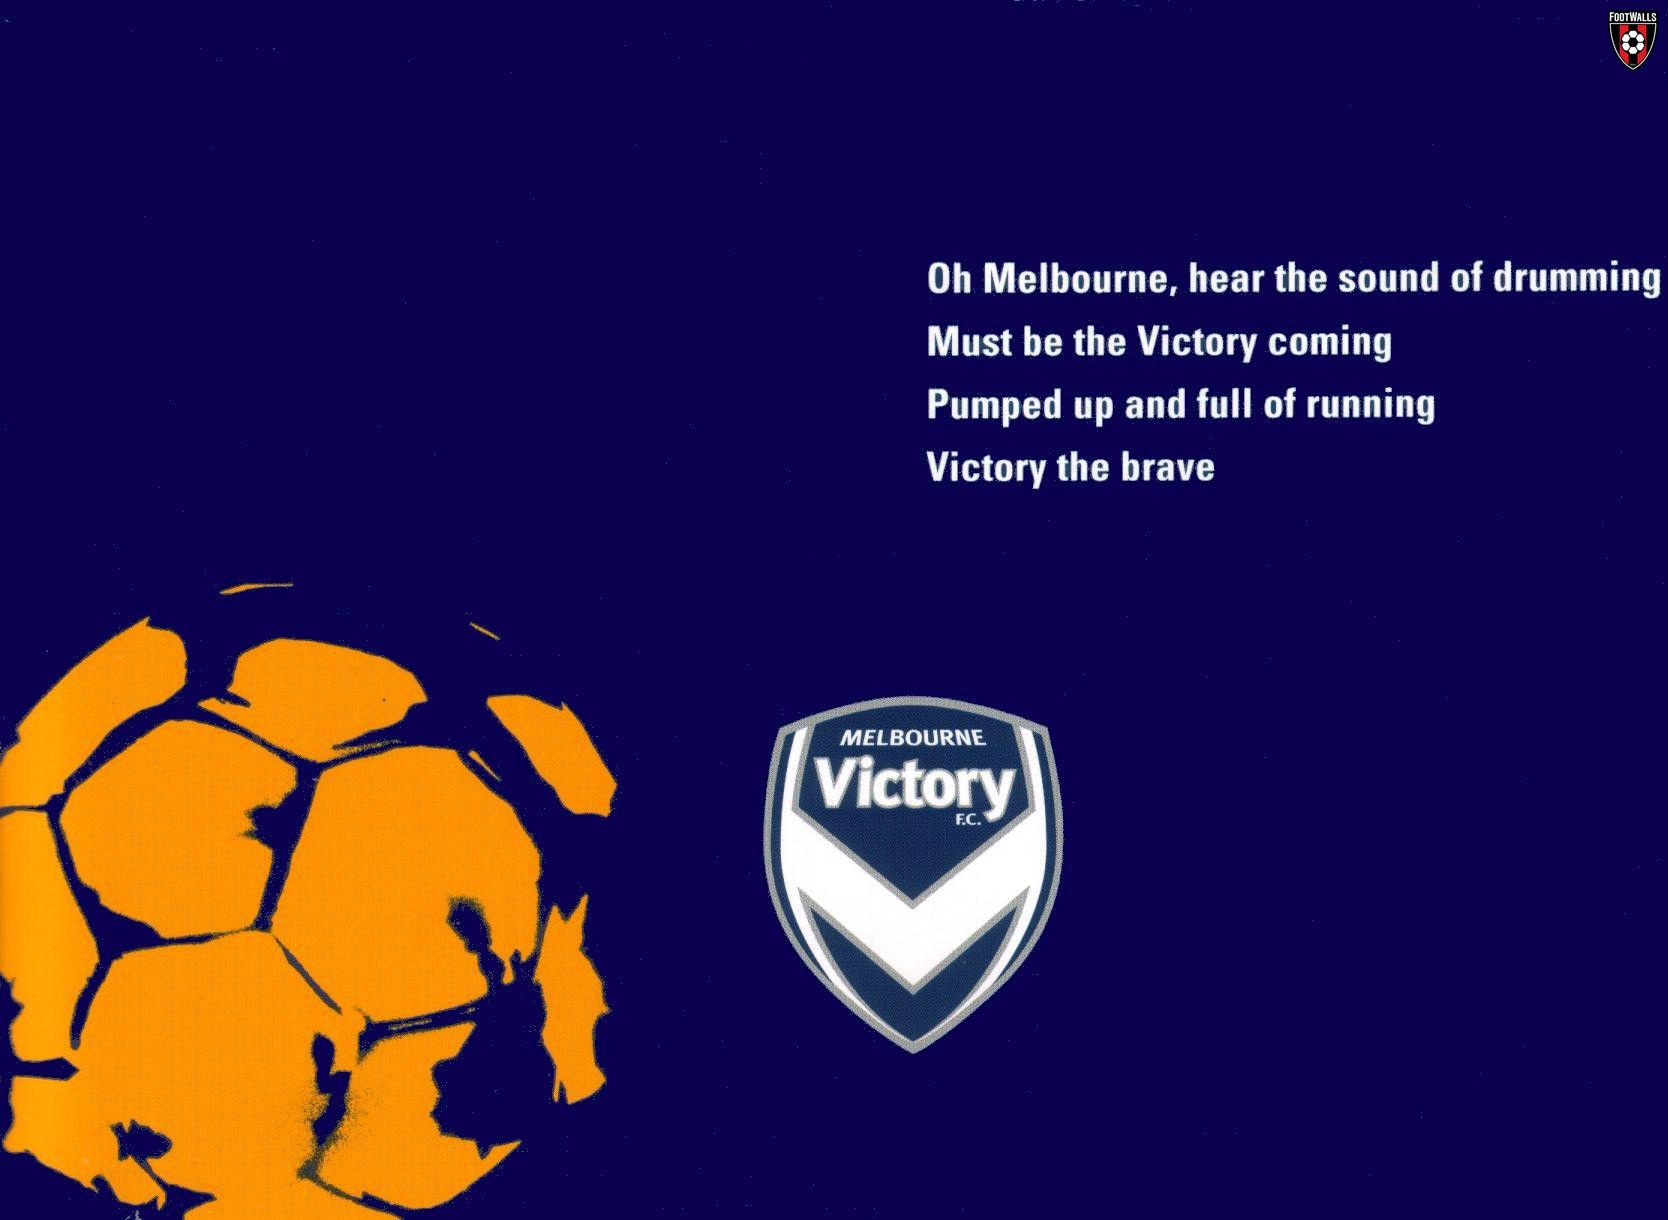 Melbourne Victory Wallpaper #1 - Football Wallpapers